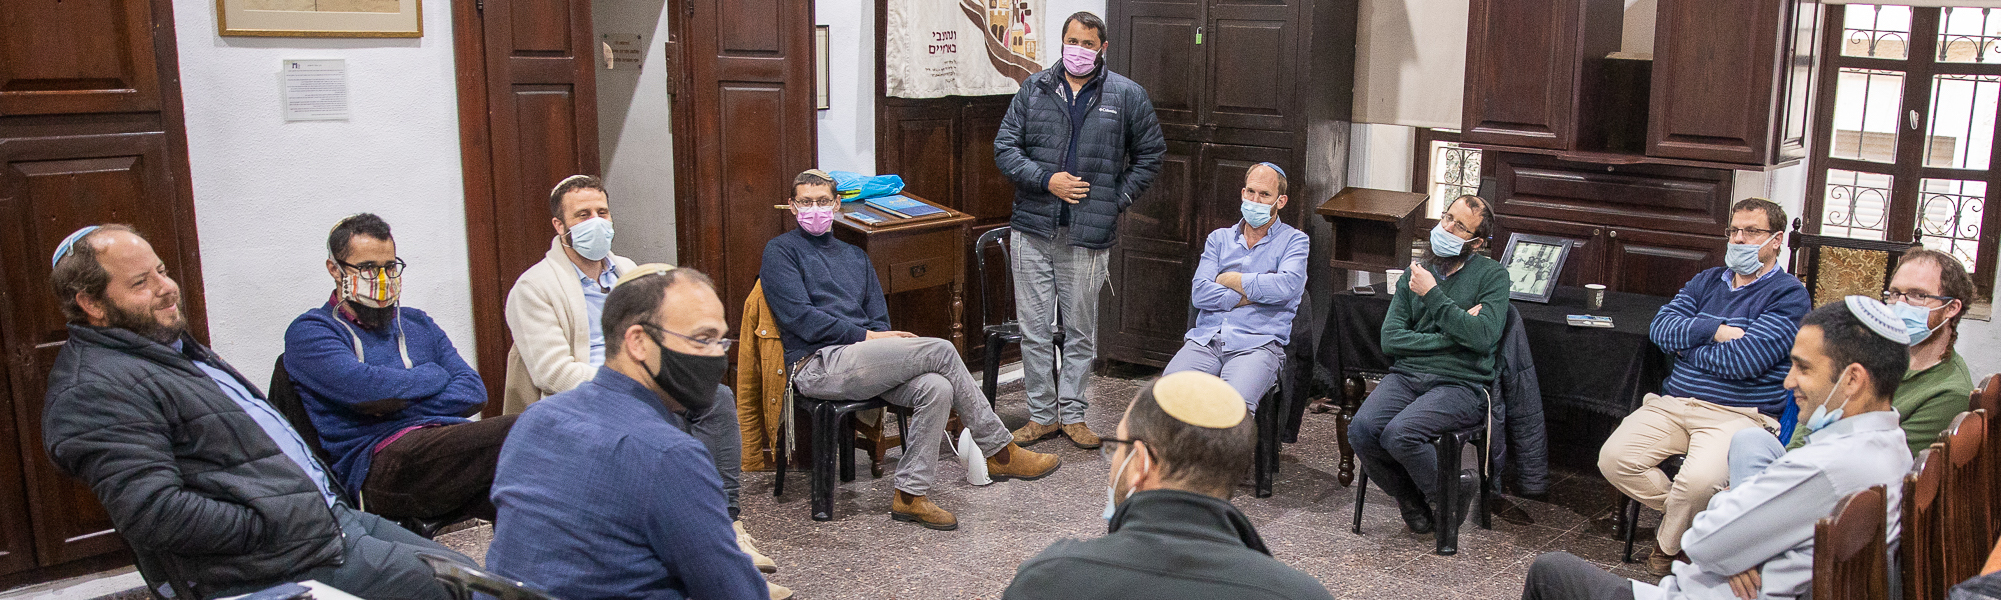 Israel Fellows - Chovevei Torah, Setting the standard in rabbinic leadership